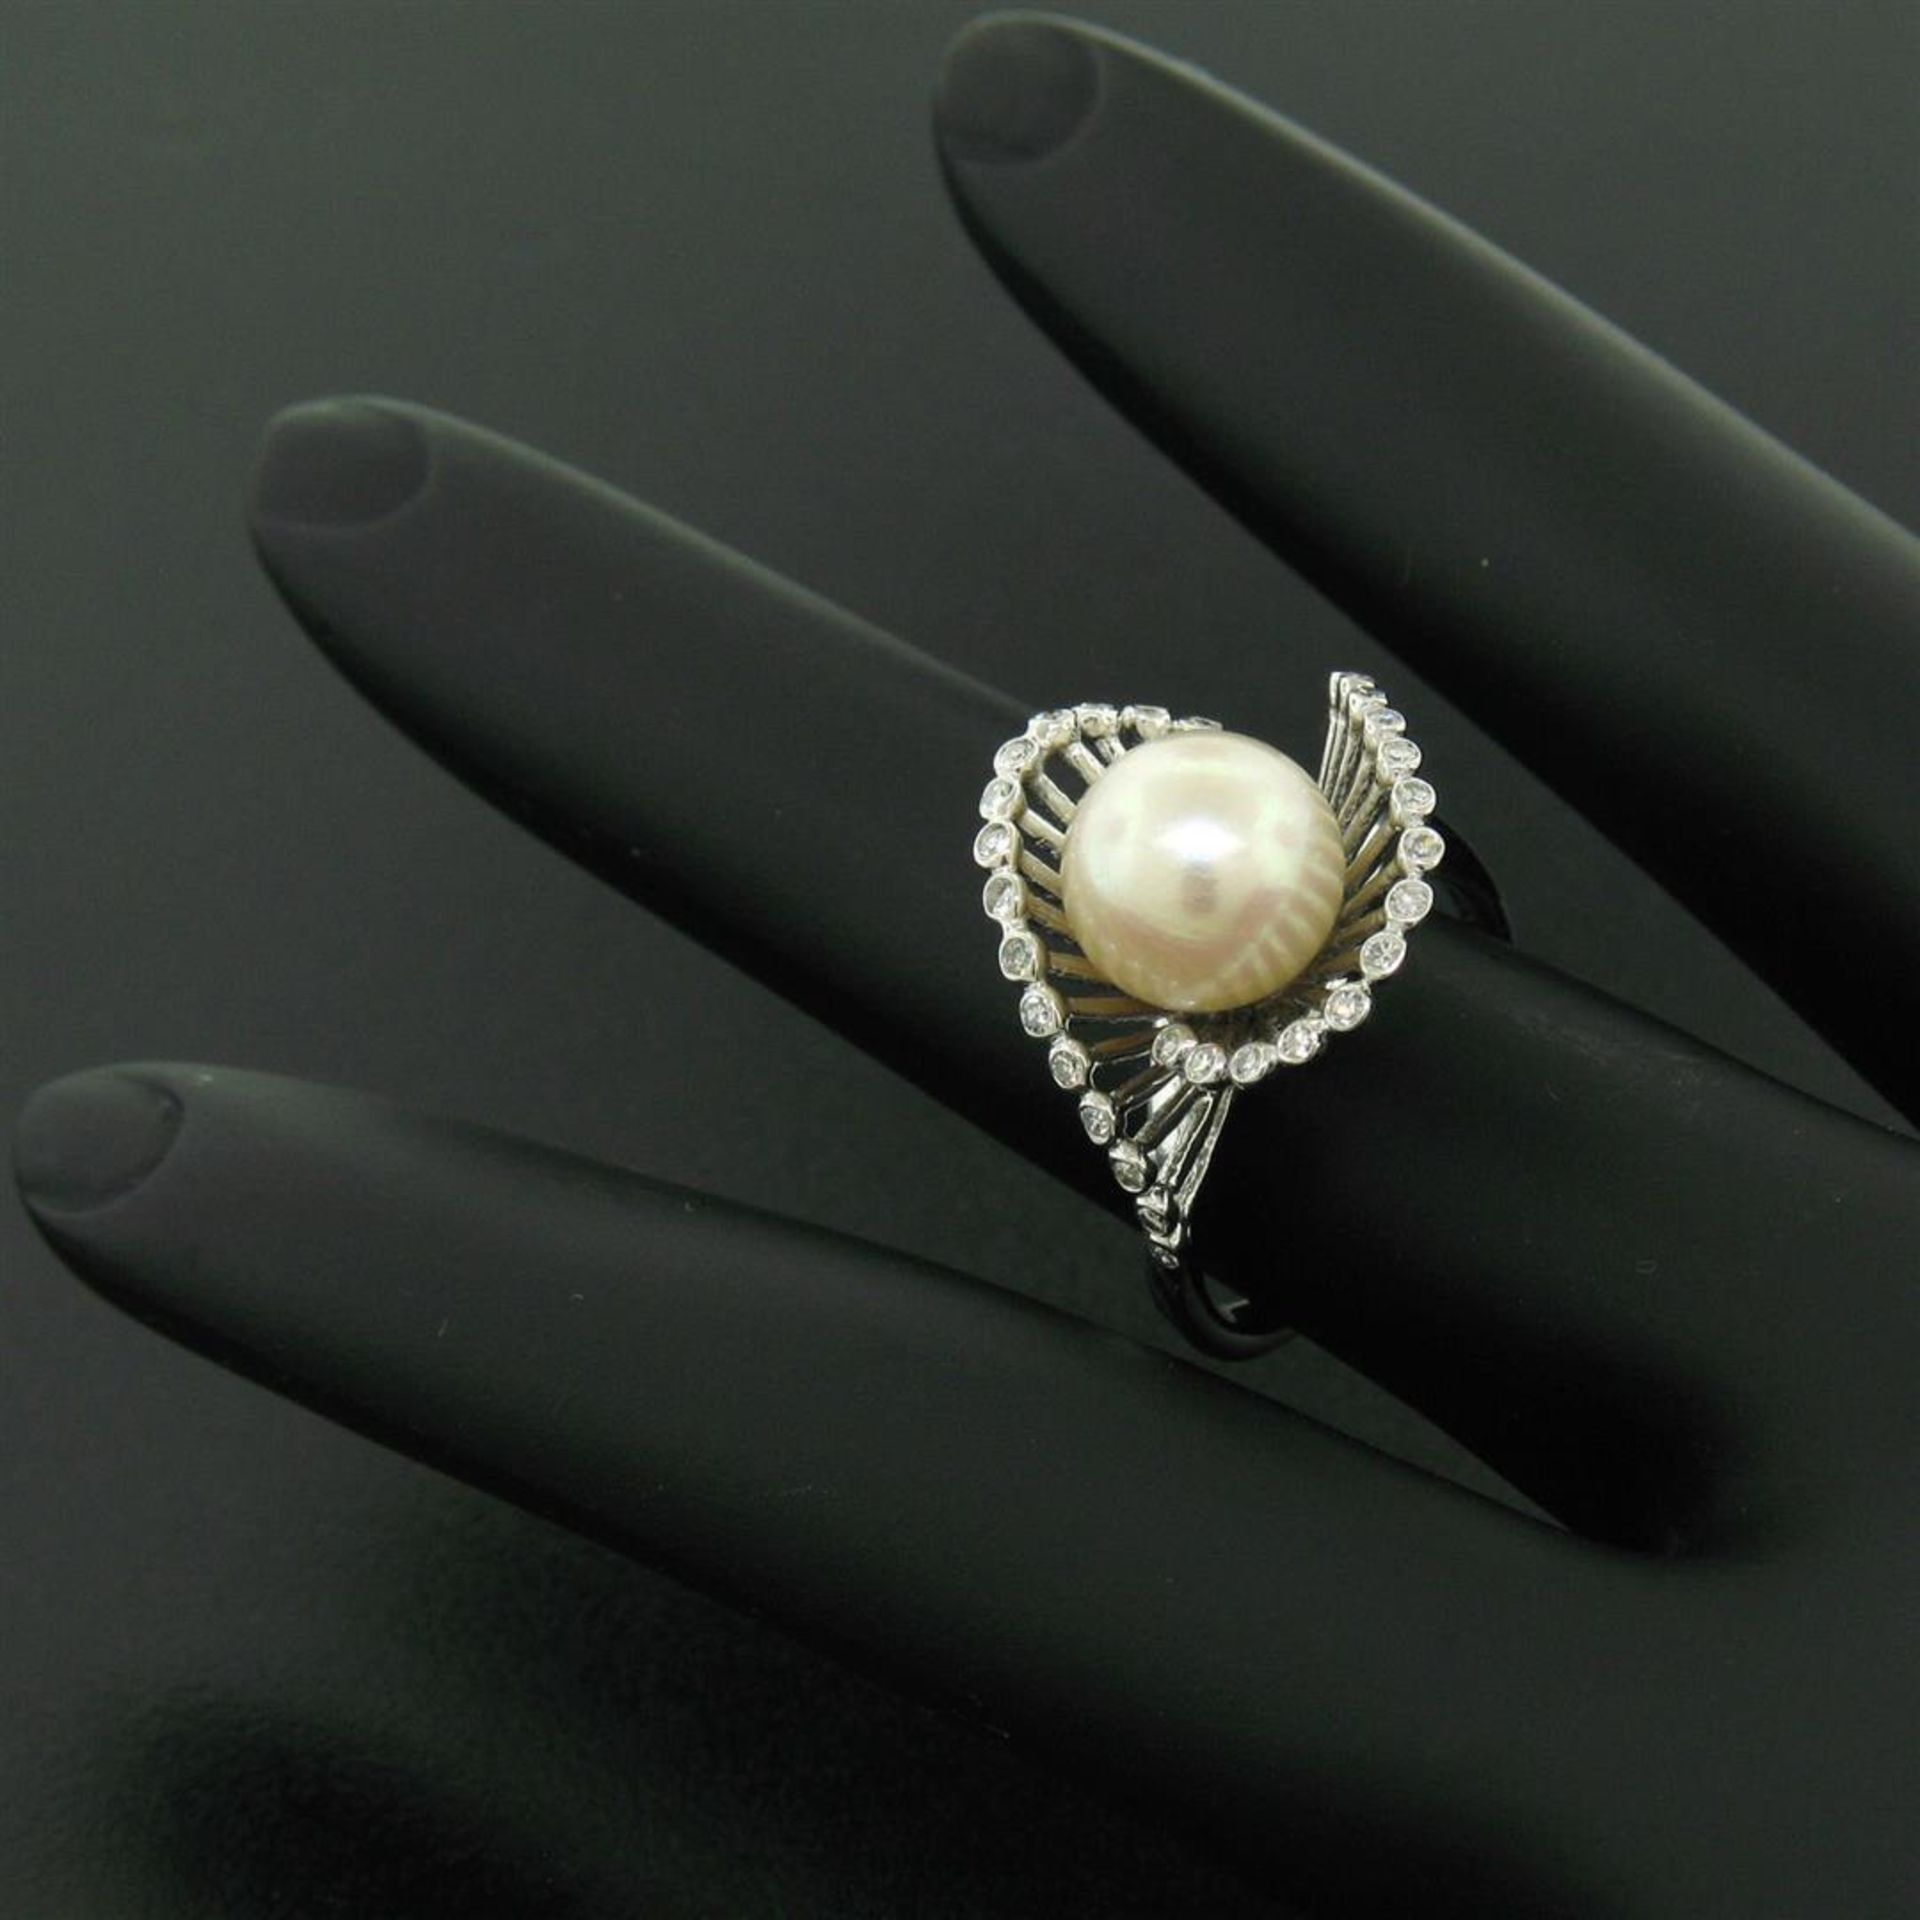 Vintage 14K White Gold 8.5mm Pearl Bezel Diamond 2 Wave Bypass Cocktail Ring - Image 8 of 8